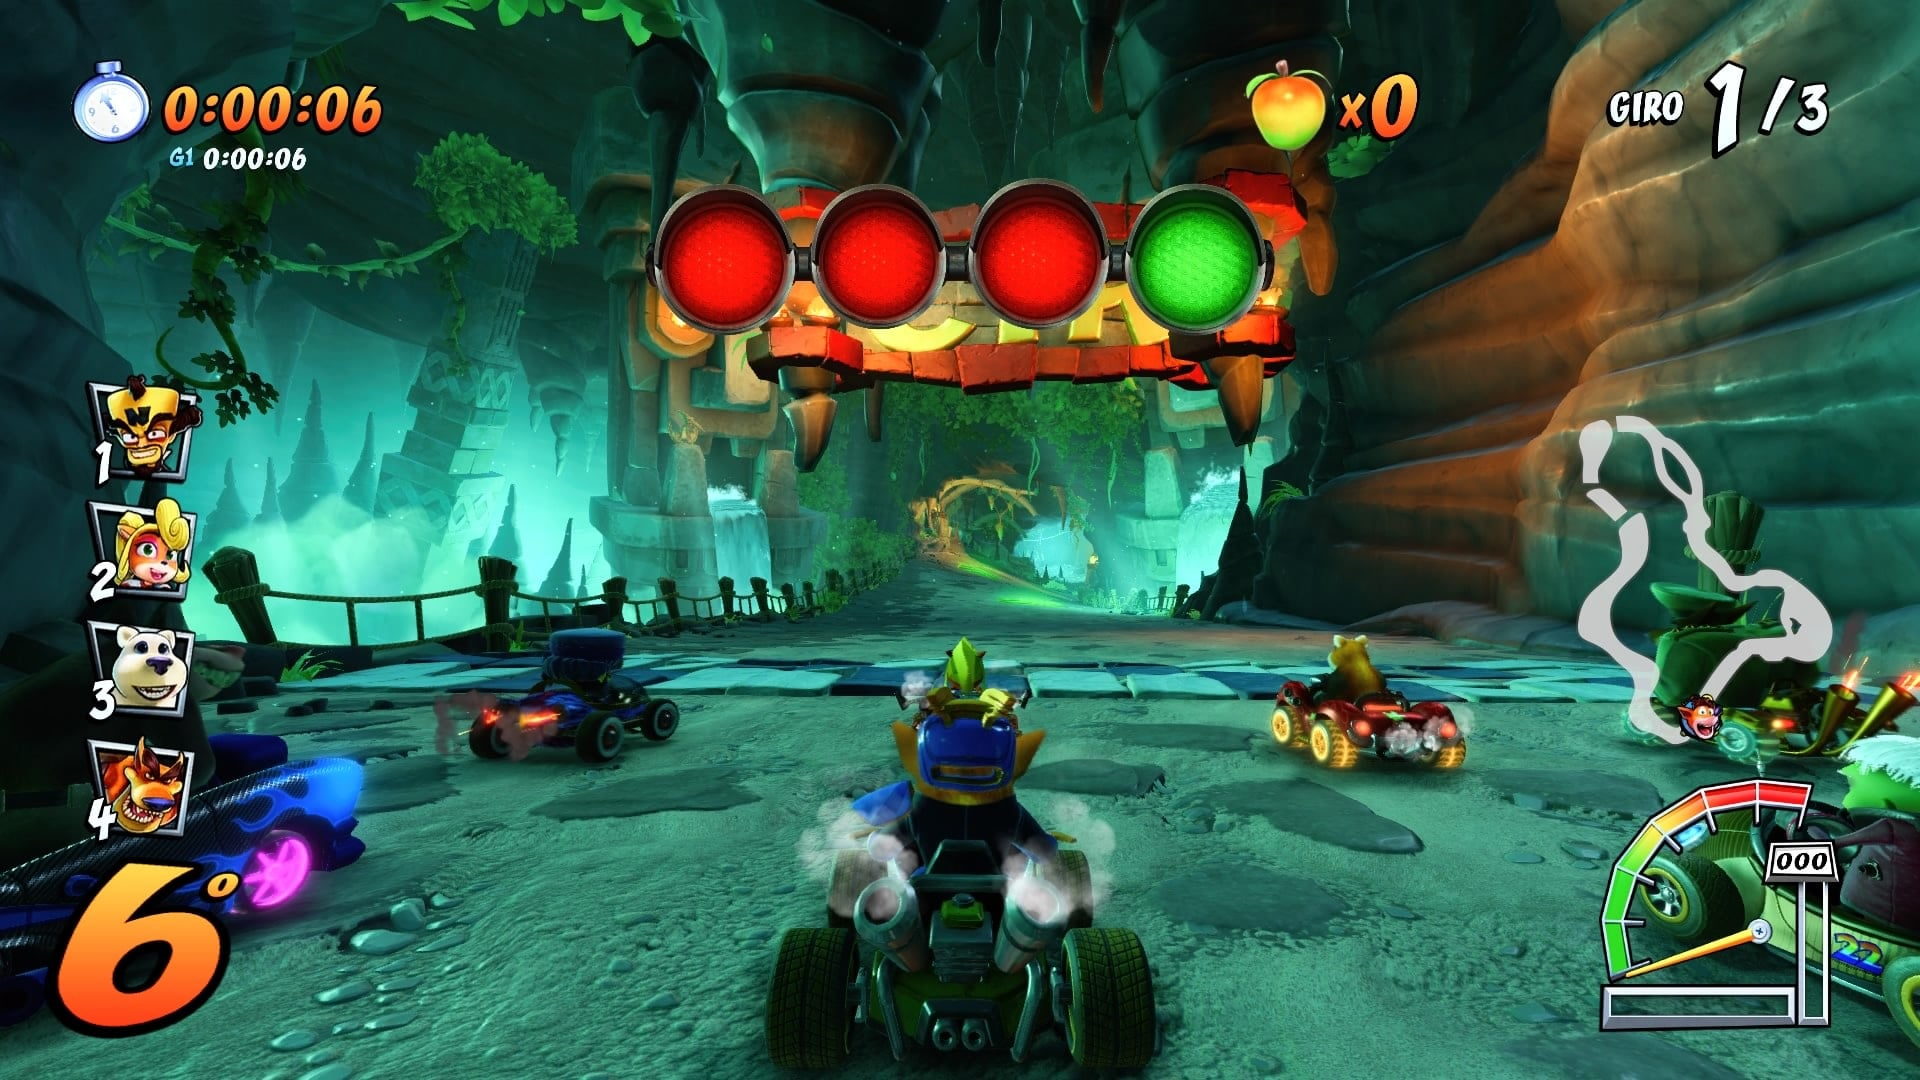 Crash Team Racing Nitro Fueled: 20 Anni Dopo - Recensione 6 - Hynerd.it